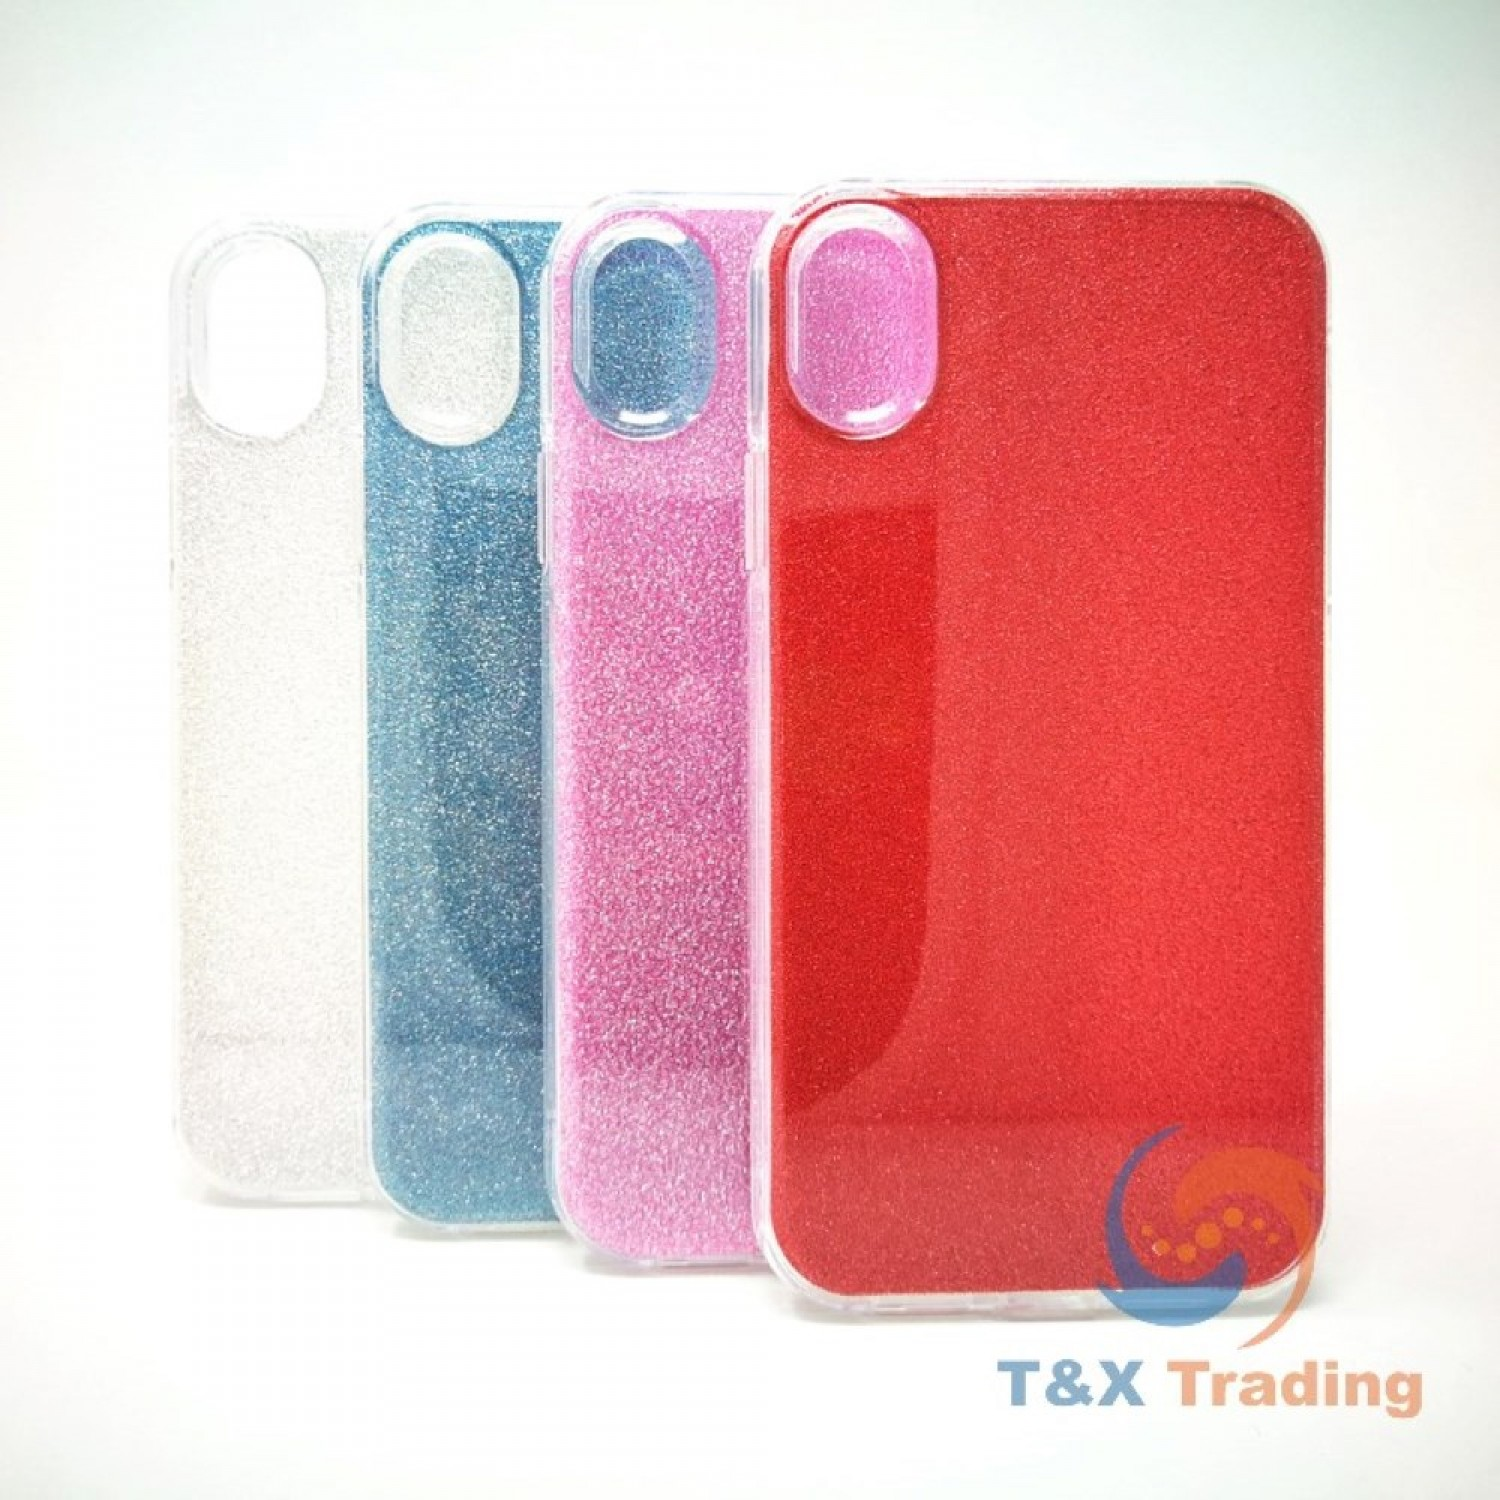 Apple iPhone X / XS - Twinkling Glass Crystal Phone Case